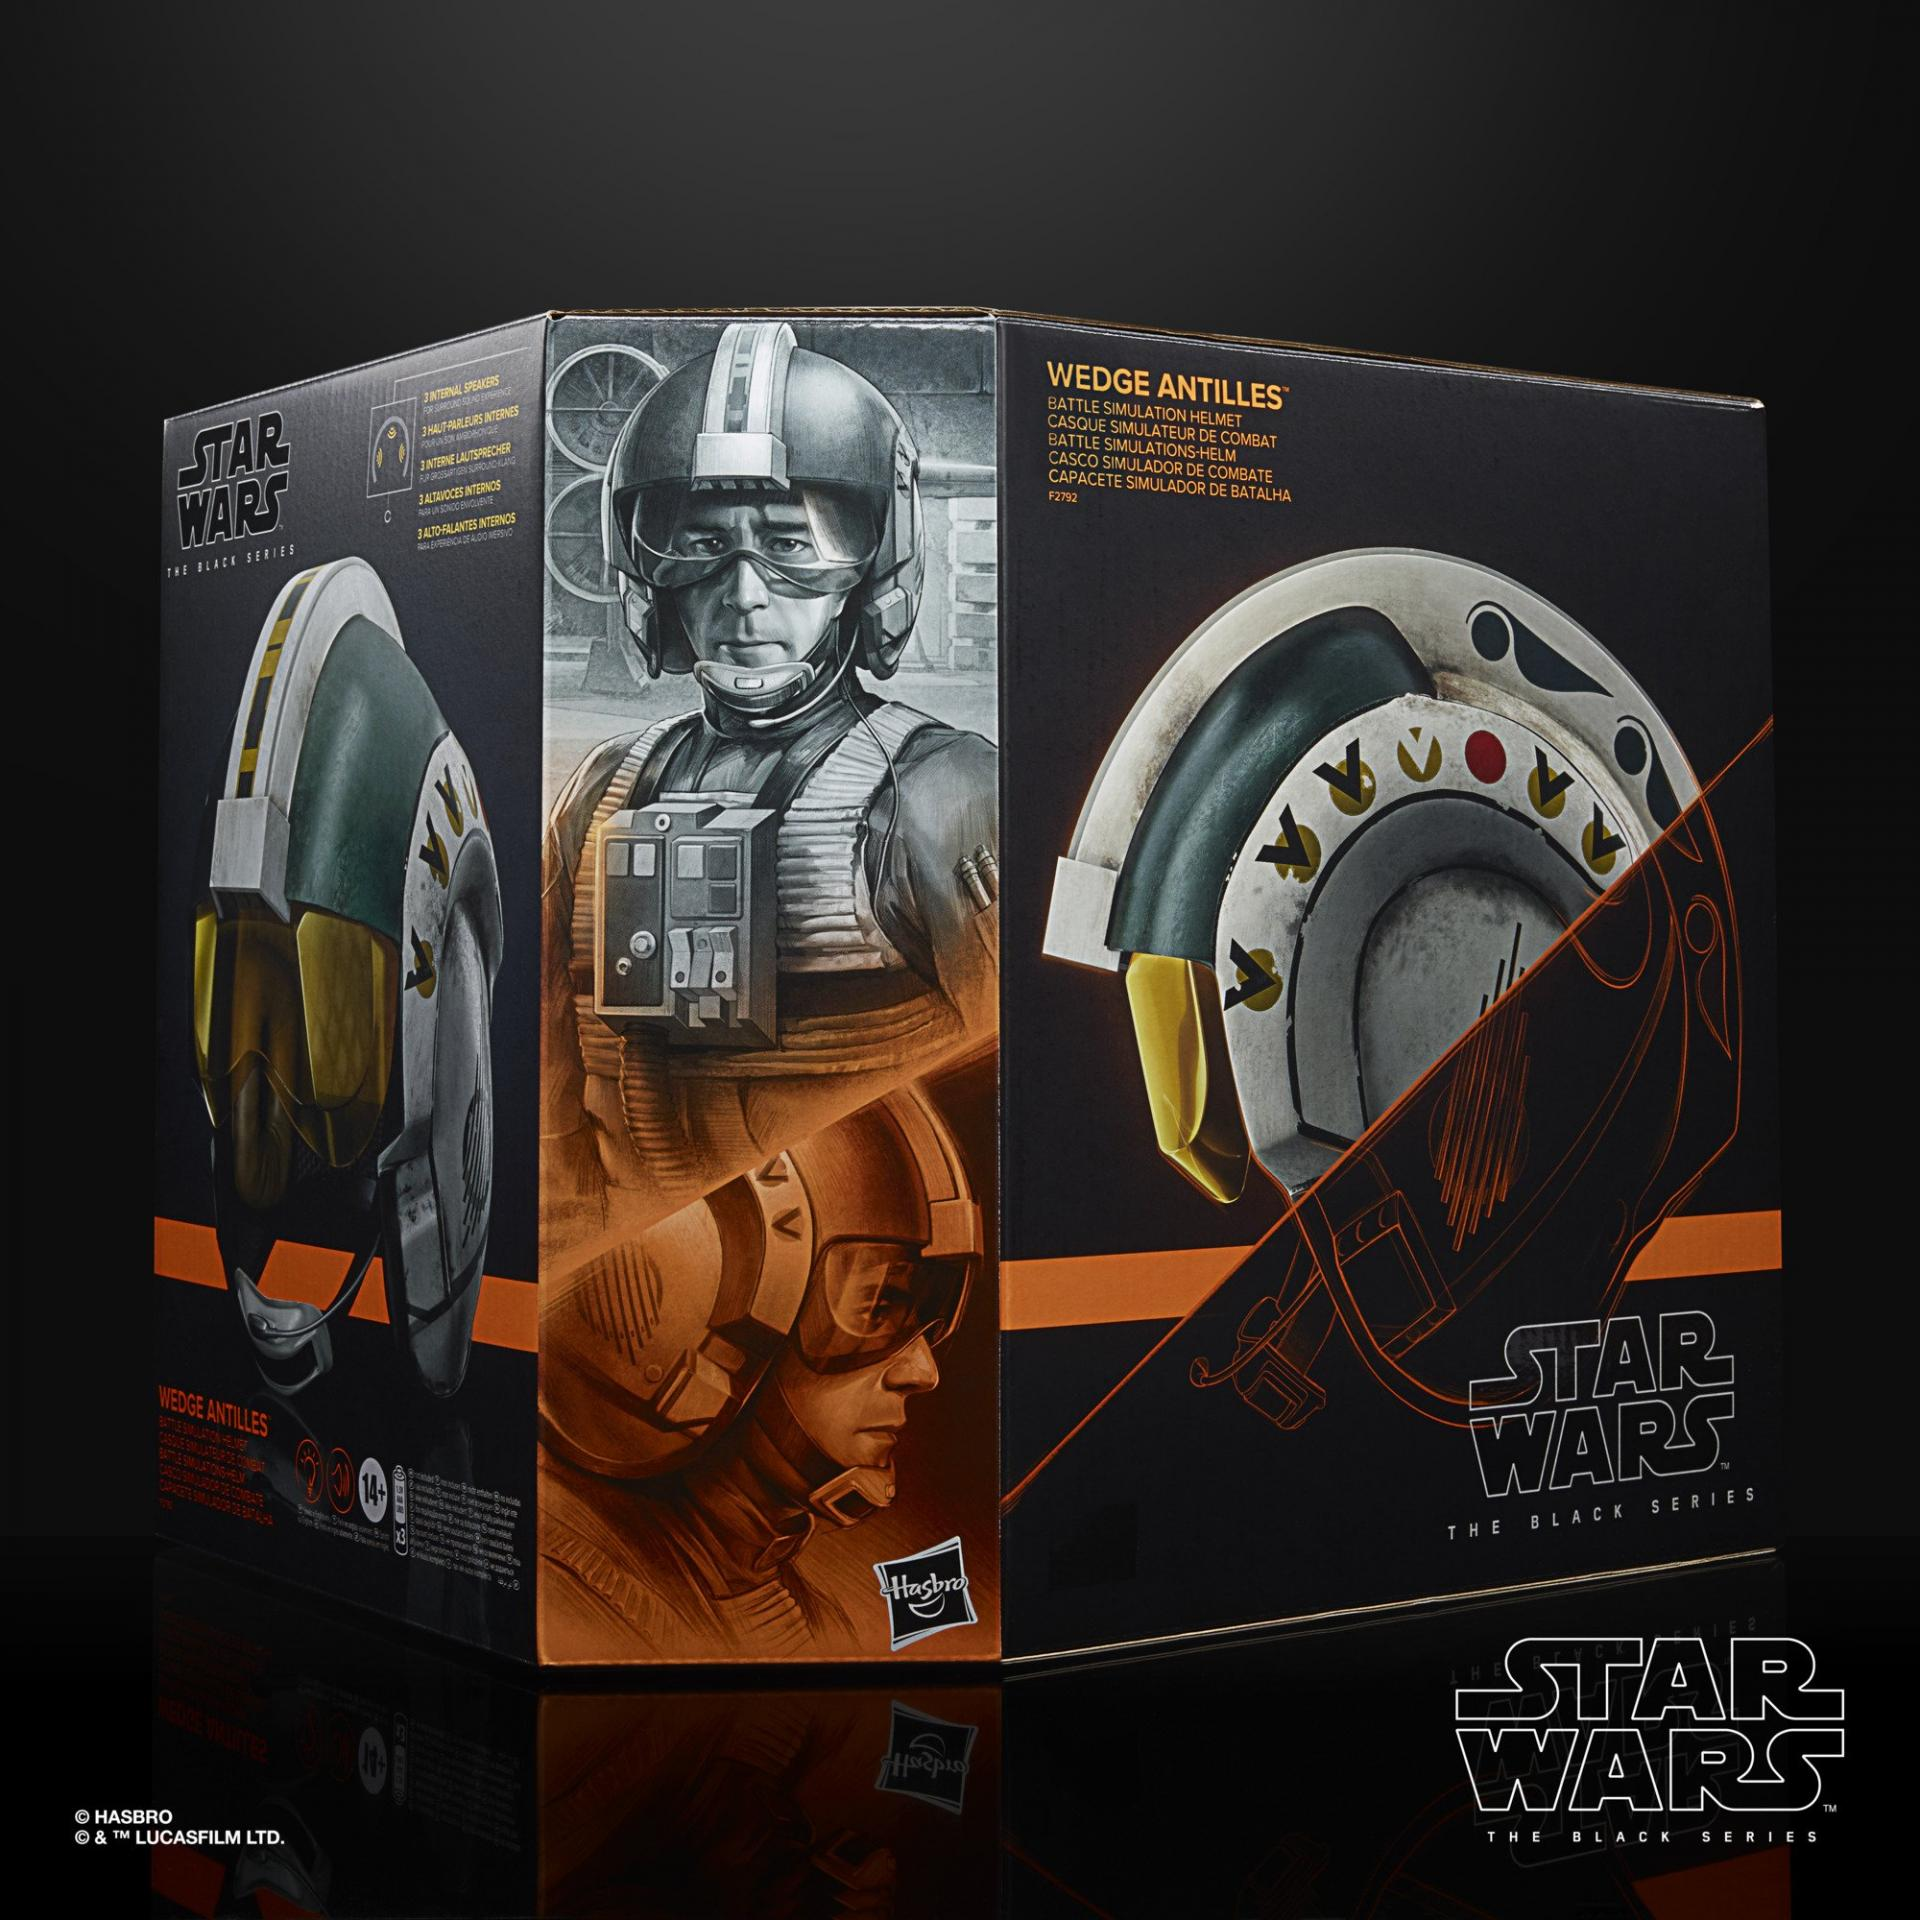 Star wars the black series wedge antilles battle simulations1